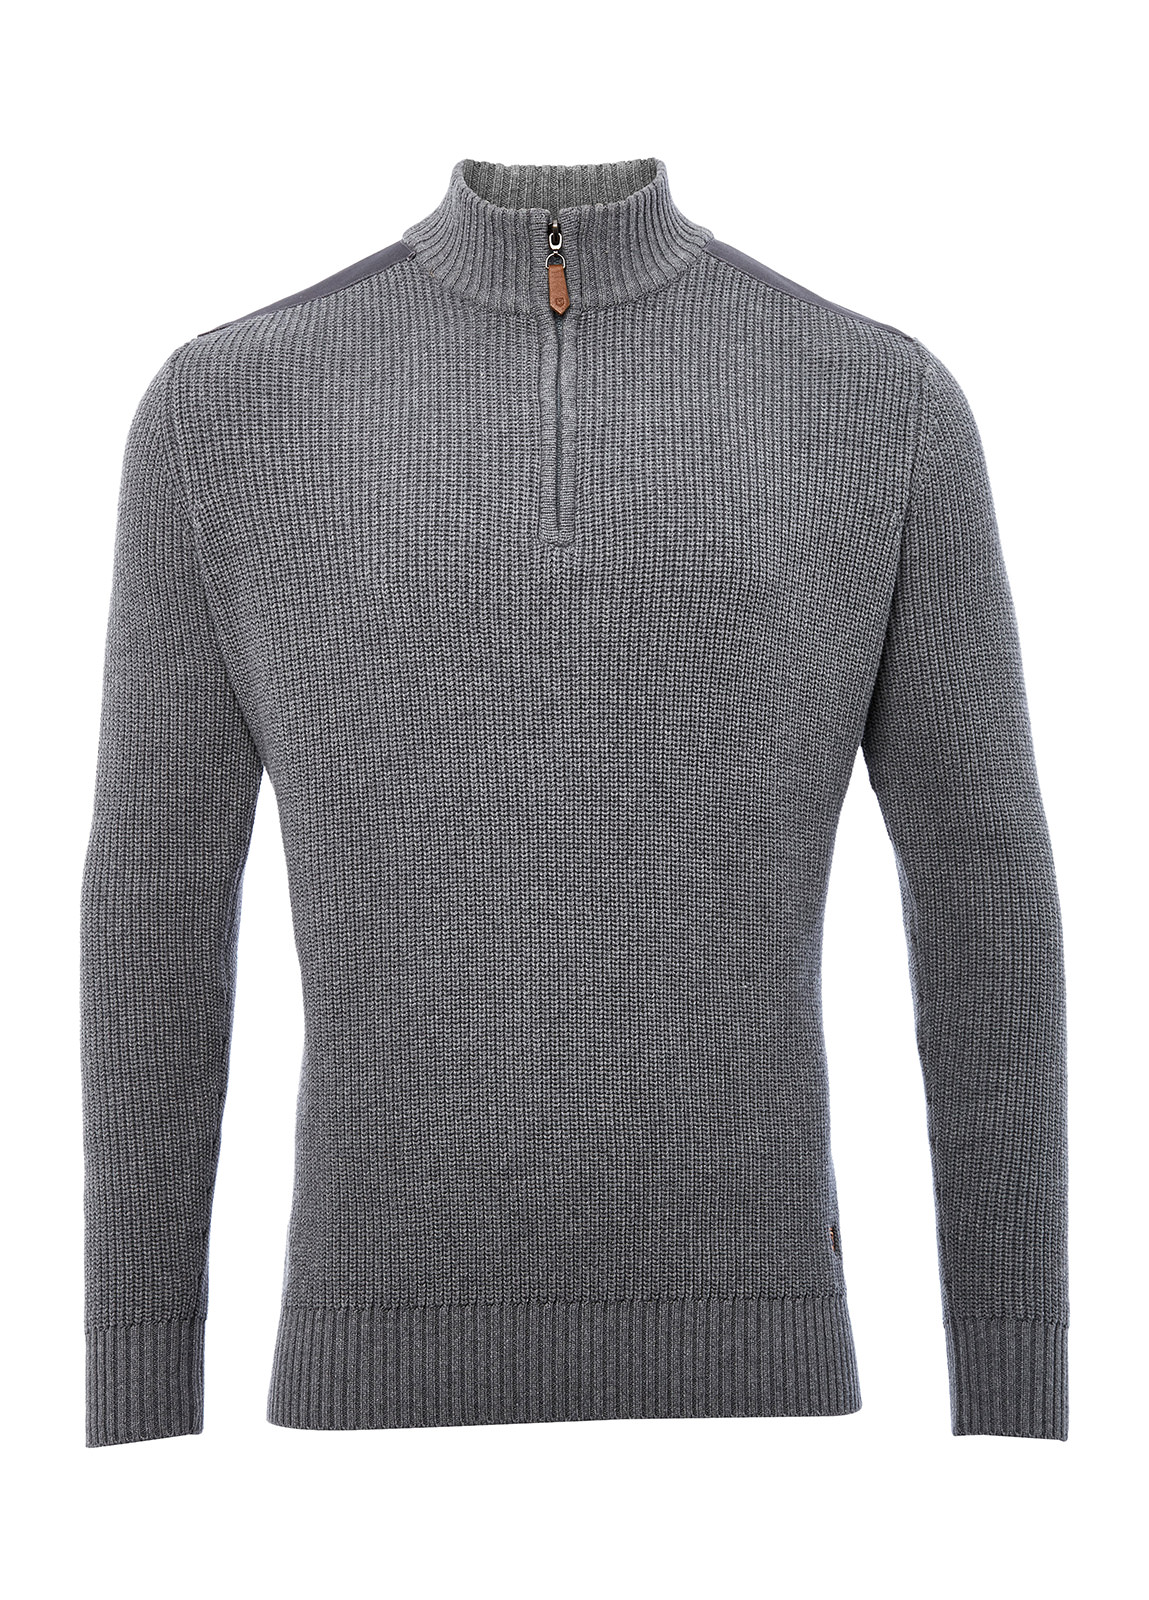 Dubarry_ Lismoyle sweater - Light Grey_Image_2